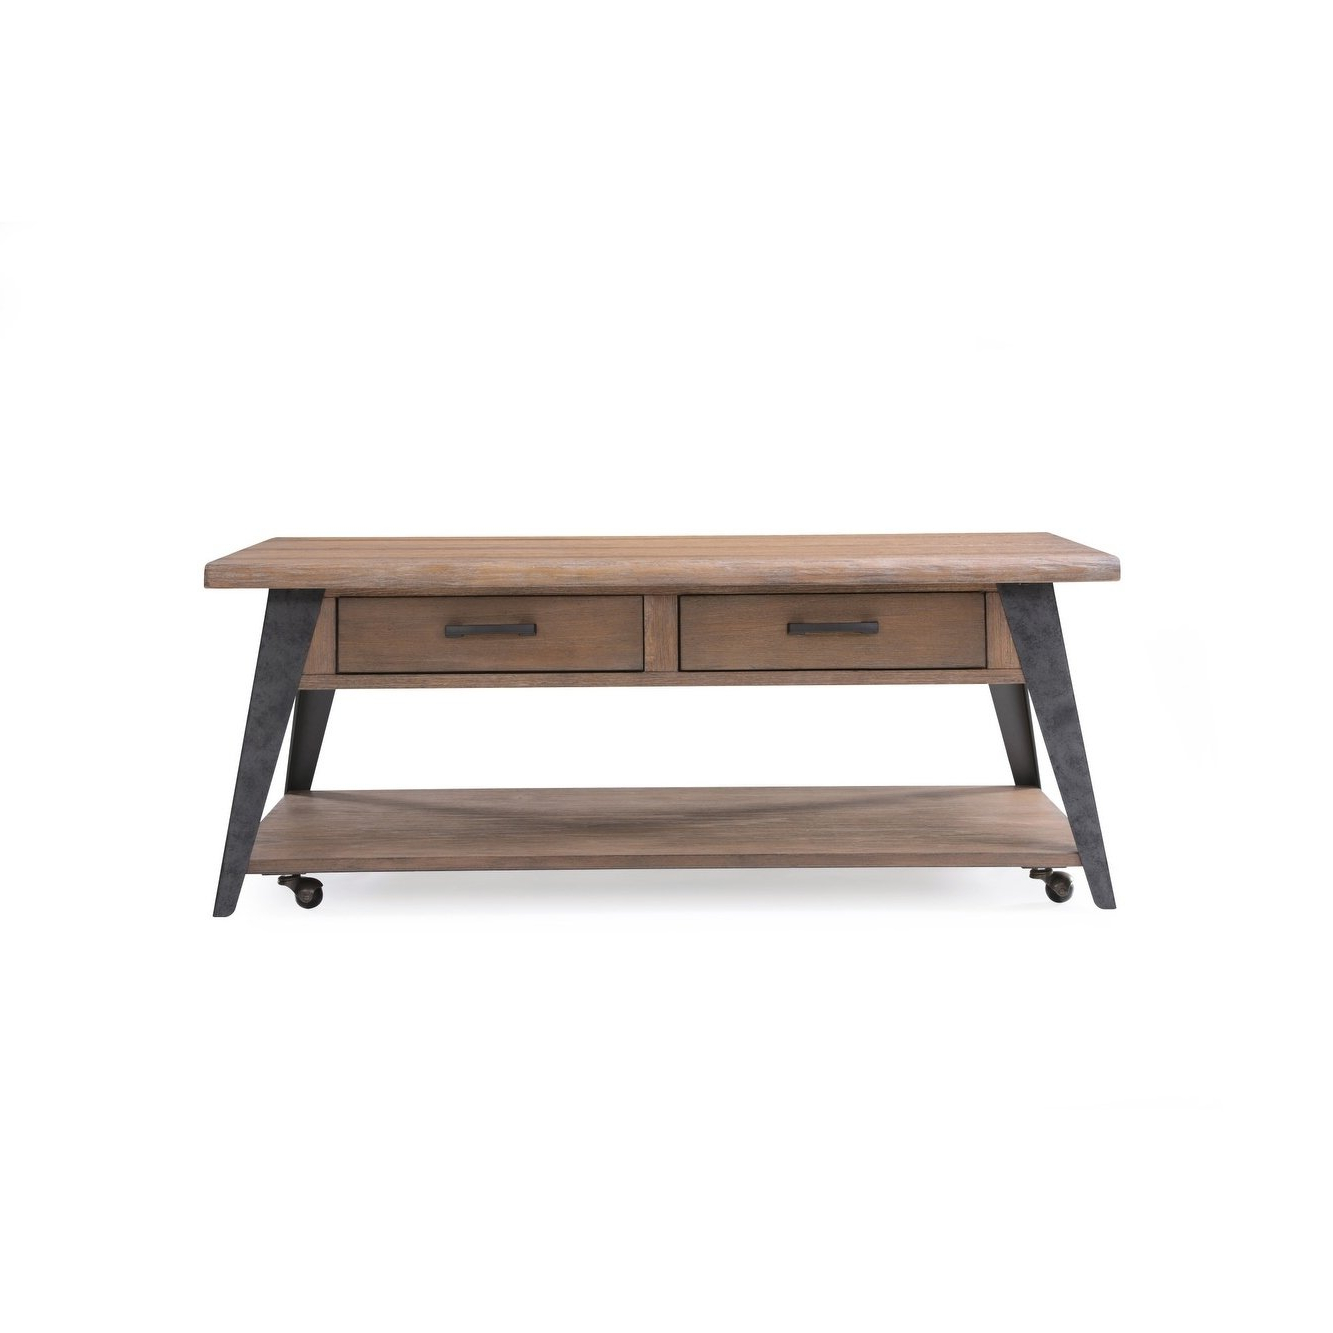 Mill Coffee Tables Pertaining To Latest Shop Emerald Home Harper's Mill Weathered Tan Coffee Table – On Sale (View 10 of 20)